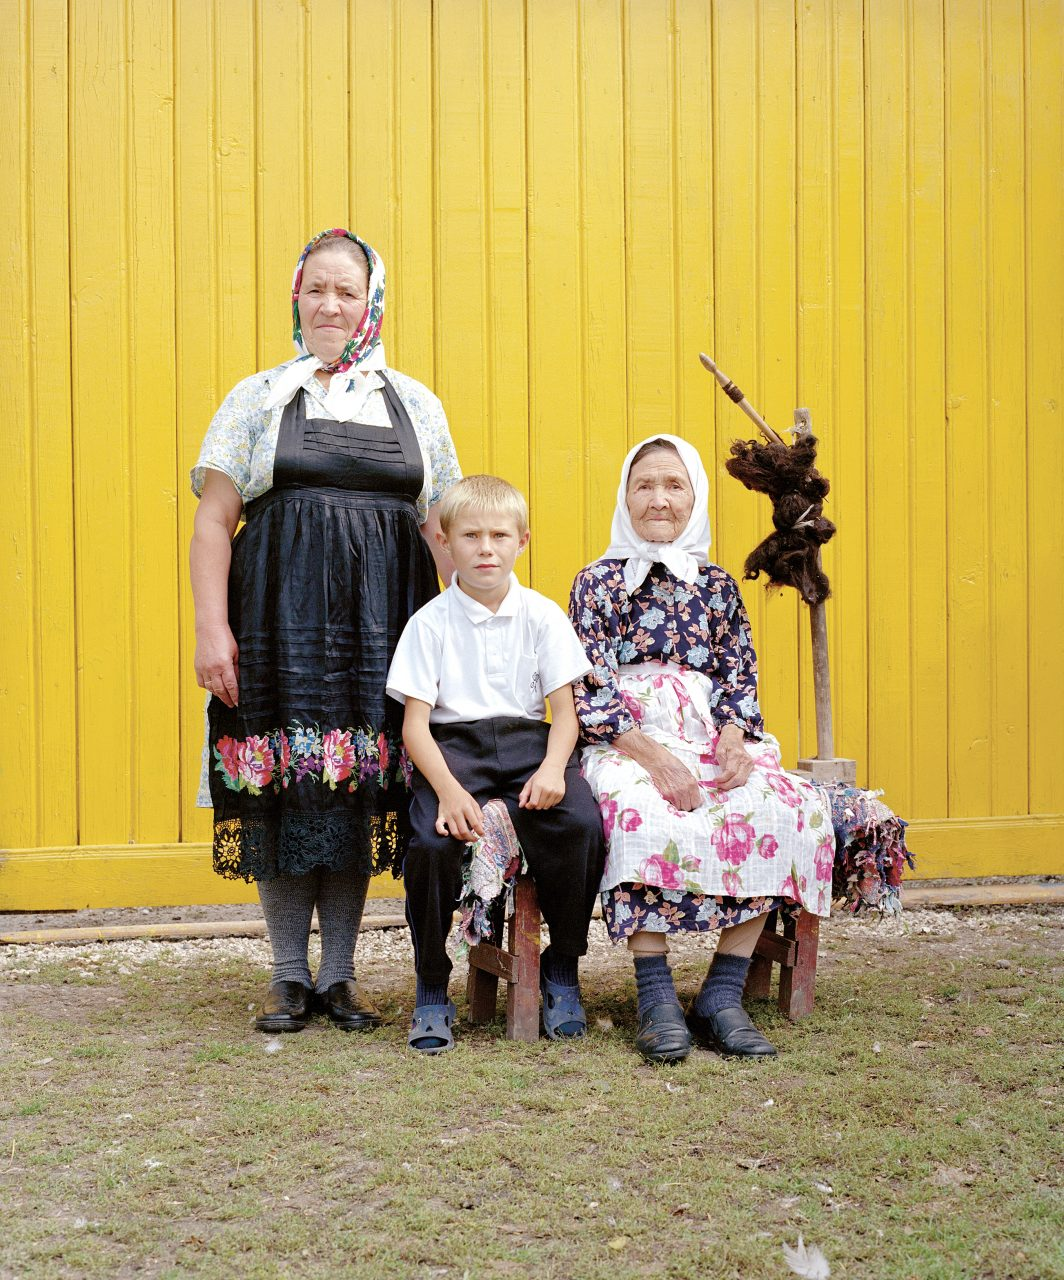 Russkie #26, c-print on dibond,100 x 80 cm, 2007